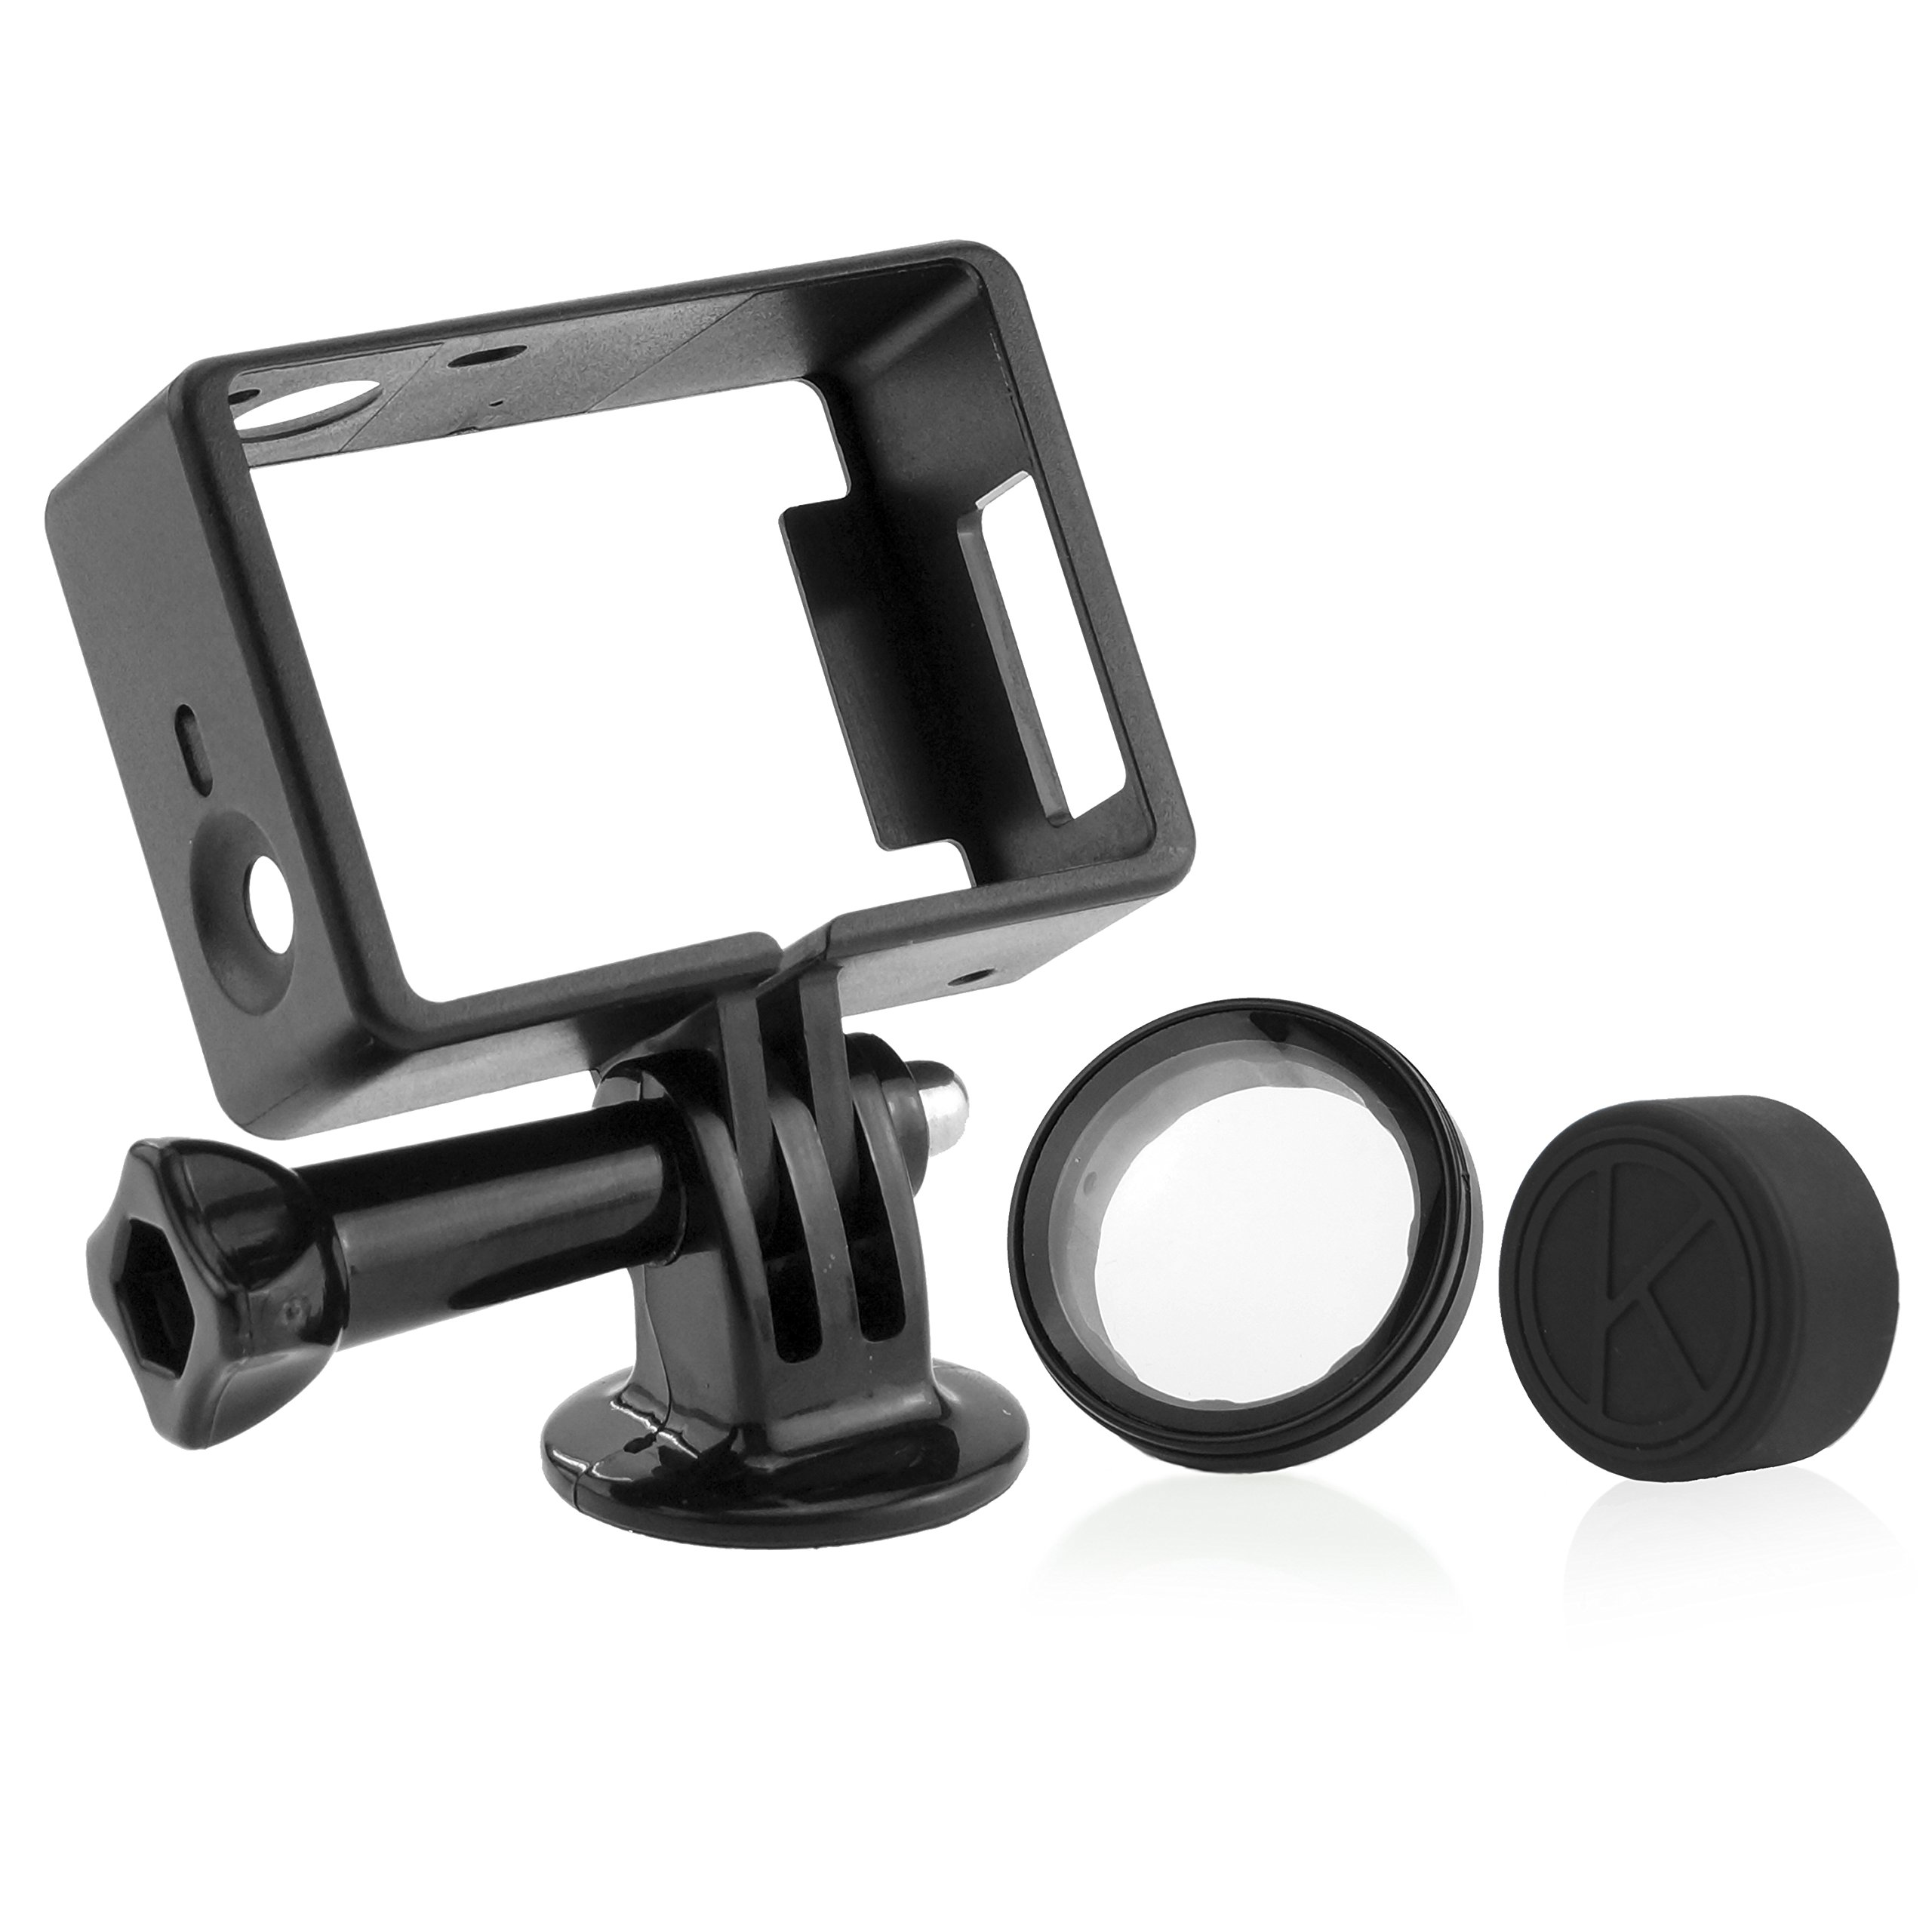 Protective Housing Shell Case with Buckle and Tripod Adapter for GoPro Hero 4 Black and Silver Hero 3 and Hero 3+ Zeadio Frame Mount